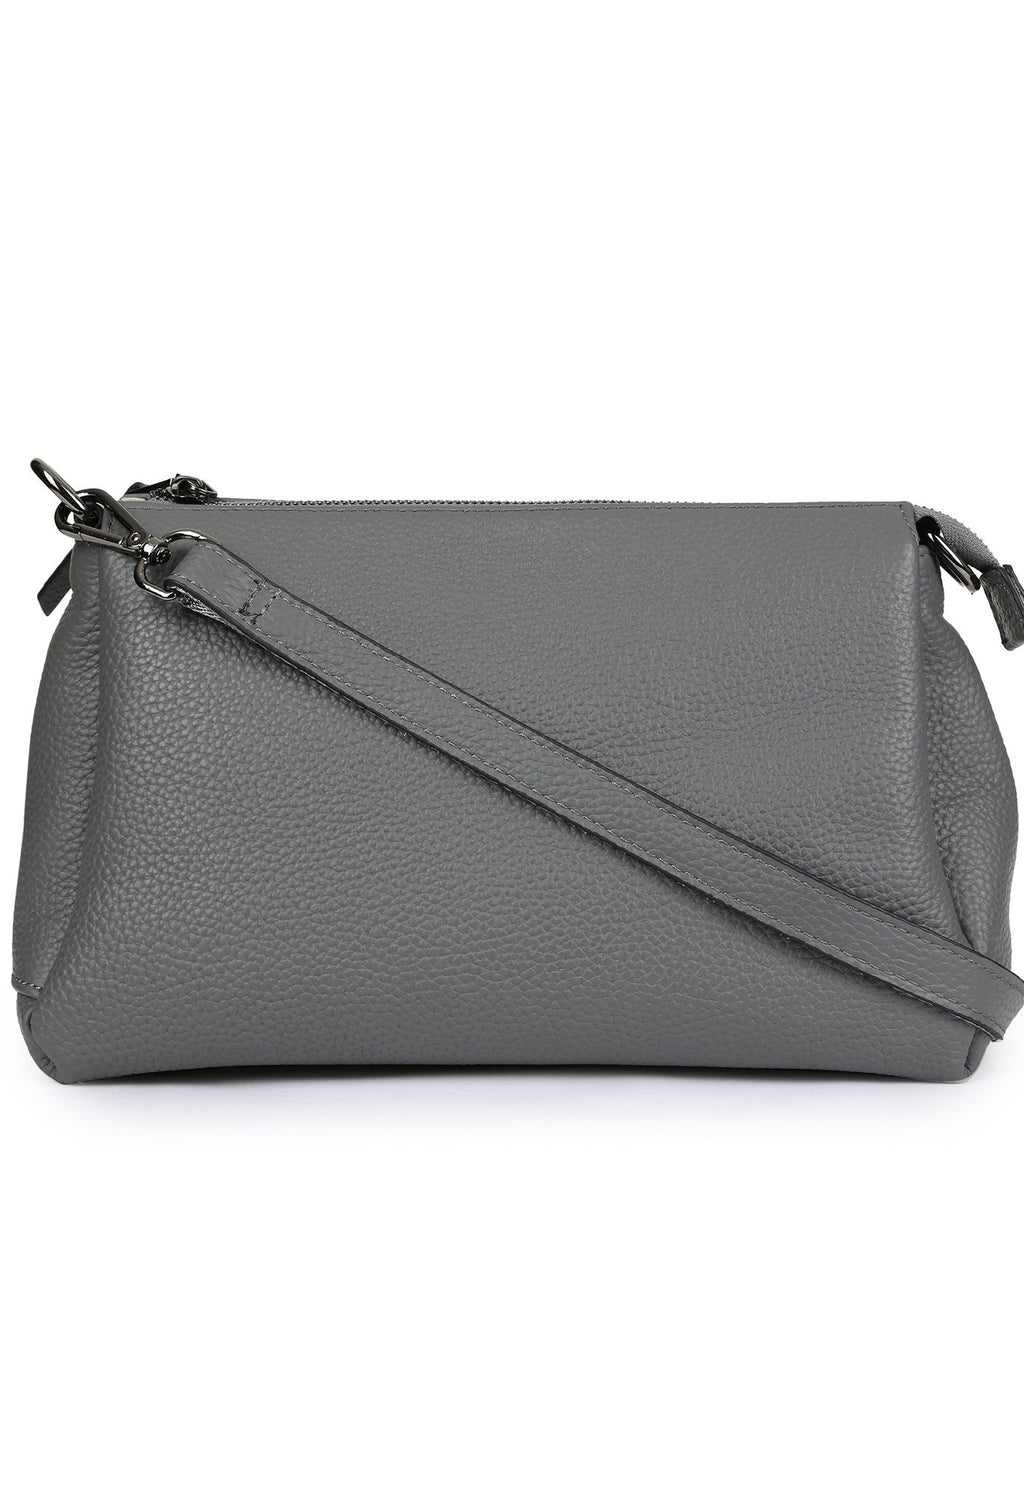 TANVI - Multi-Compartment Leather Crossbody - Light Grey